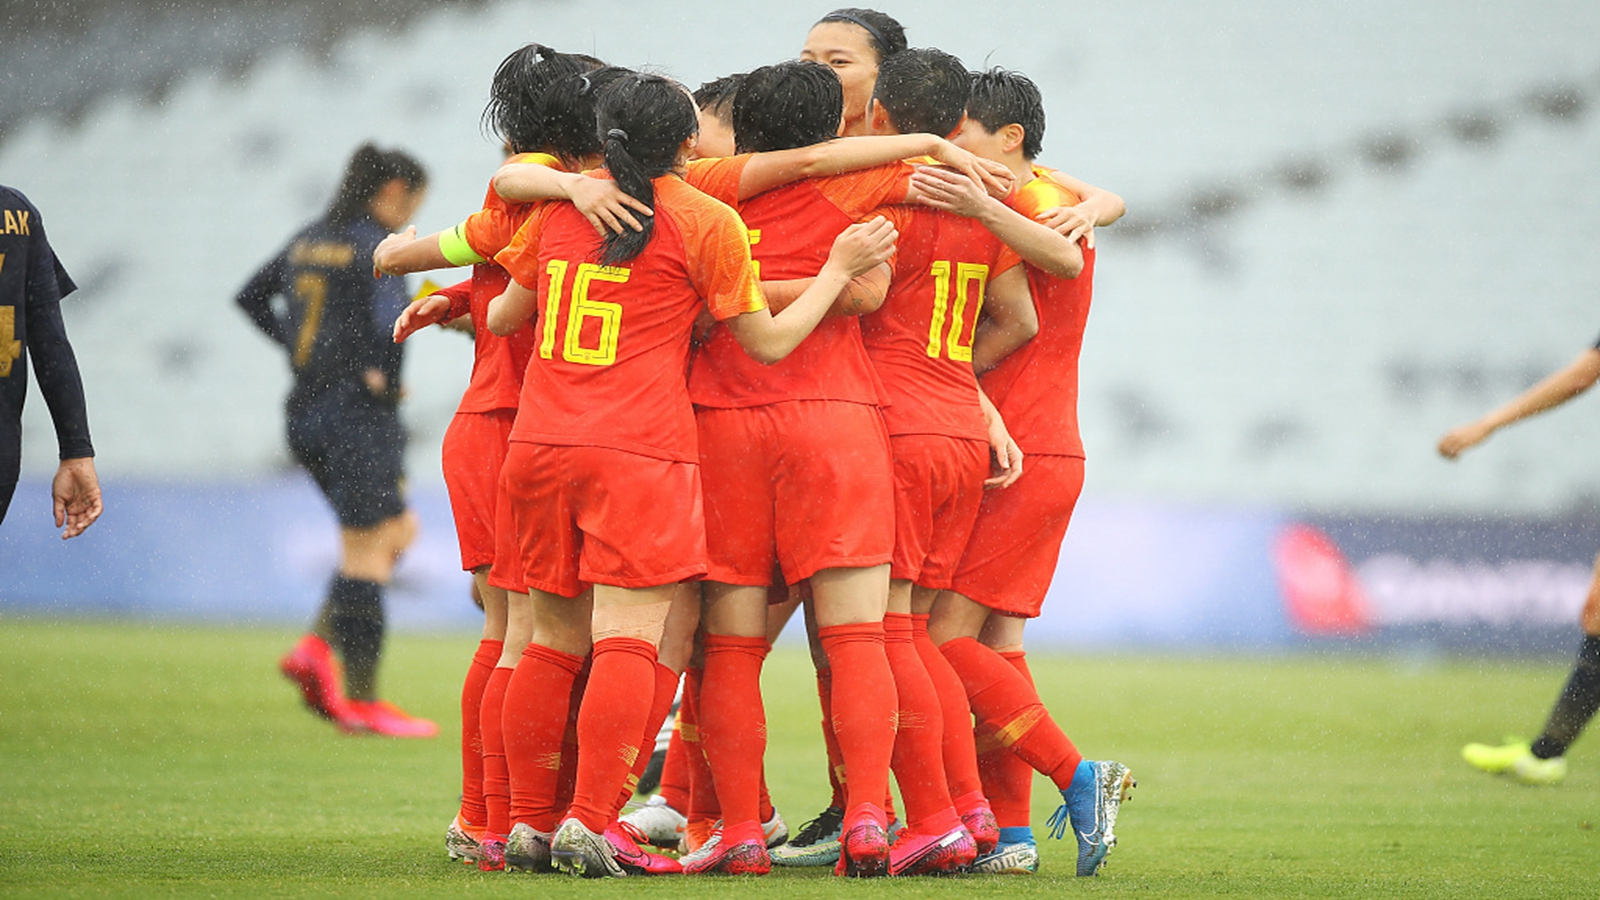 Chinese women's football team proposes playing home leg of Olympic qualifier playoffs in Sydney